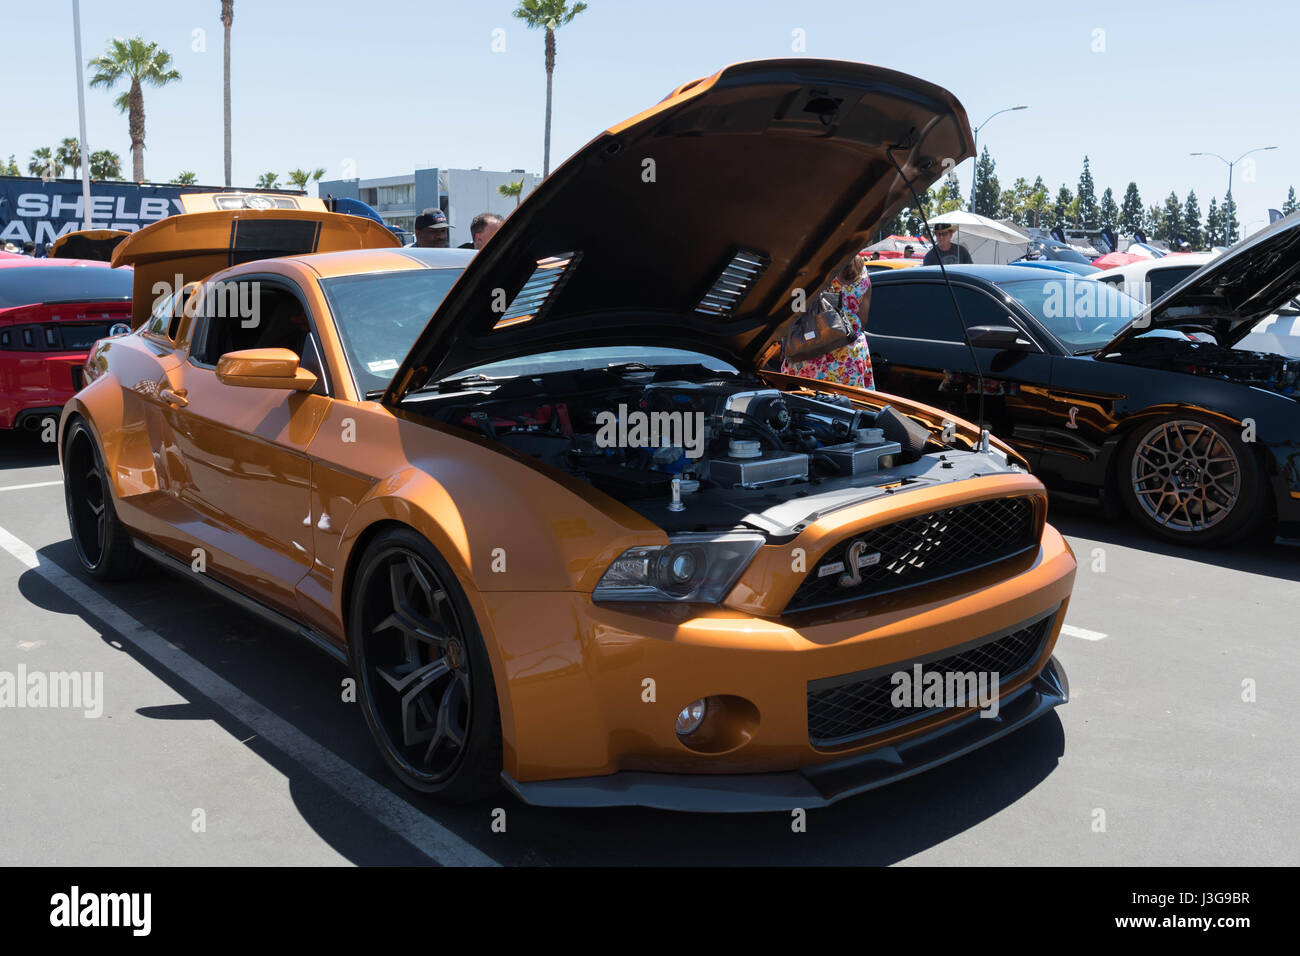 Buena park usa april 30 2017 ford mustang gt 500 super snake fifth generation on display during the fabulous fords forever